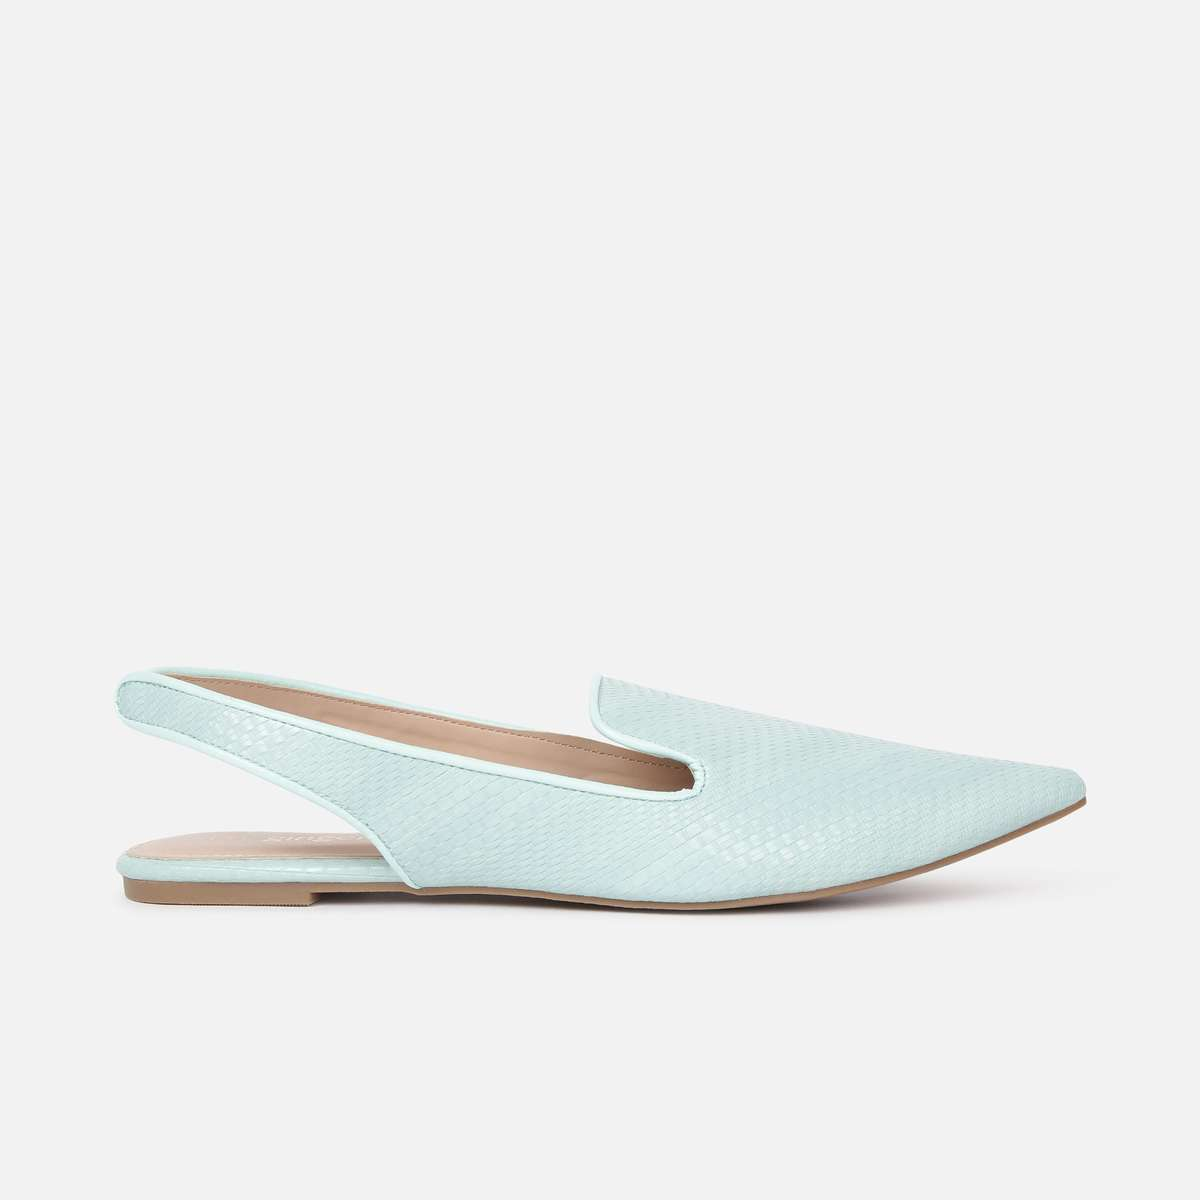 2.GINGER Women Textured Pointed Toe Flat Shoes